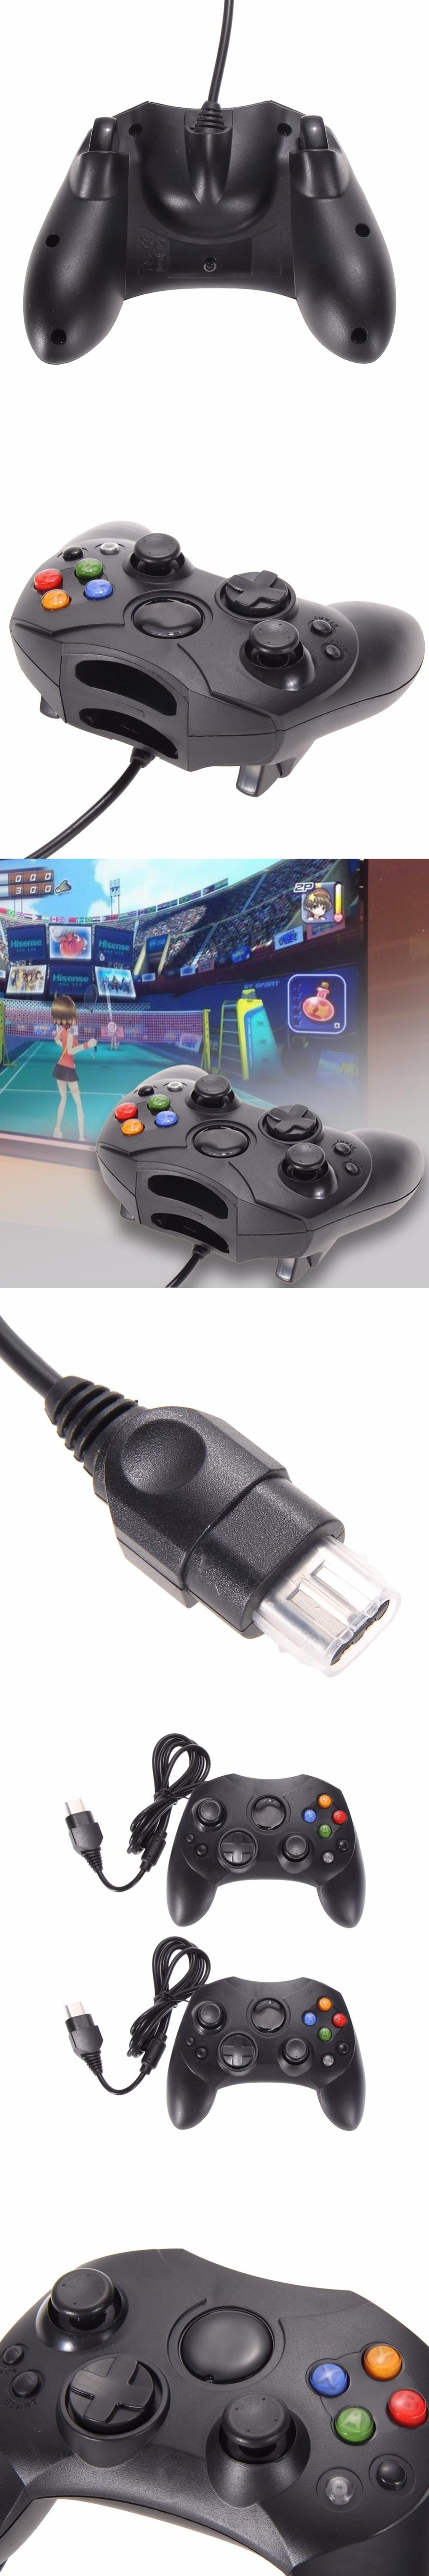 2Pcs/Lot Fashion Black Wired Gaming Controller Game Pad Joystick for ...